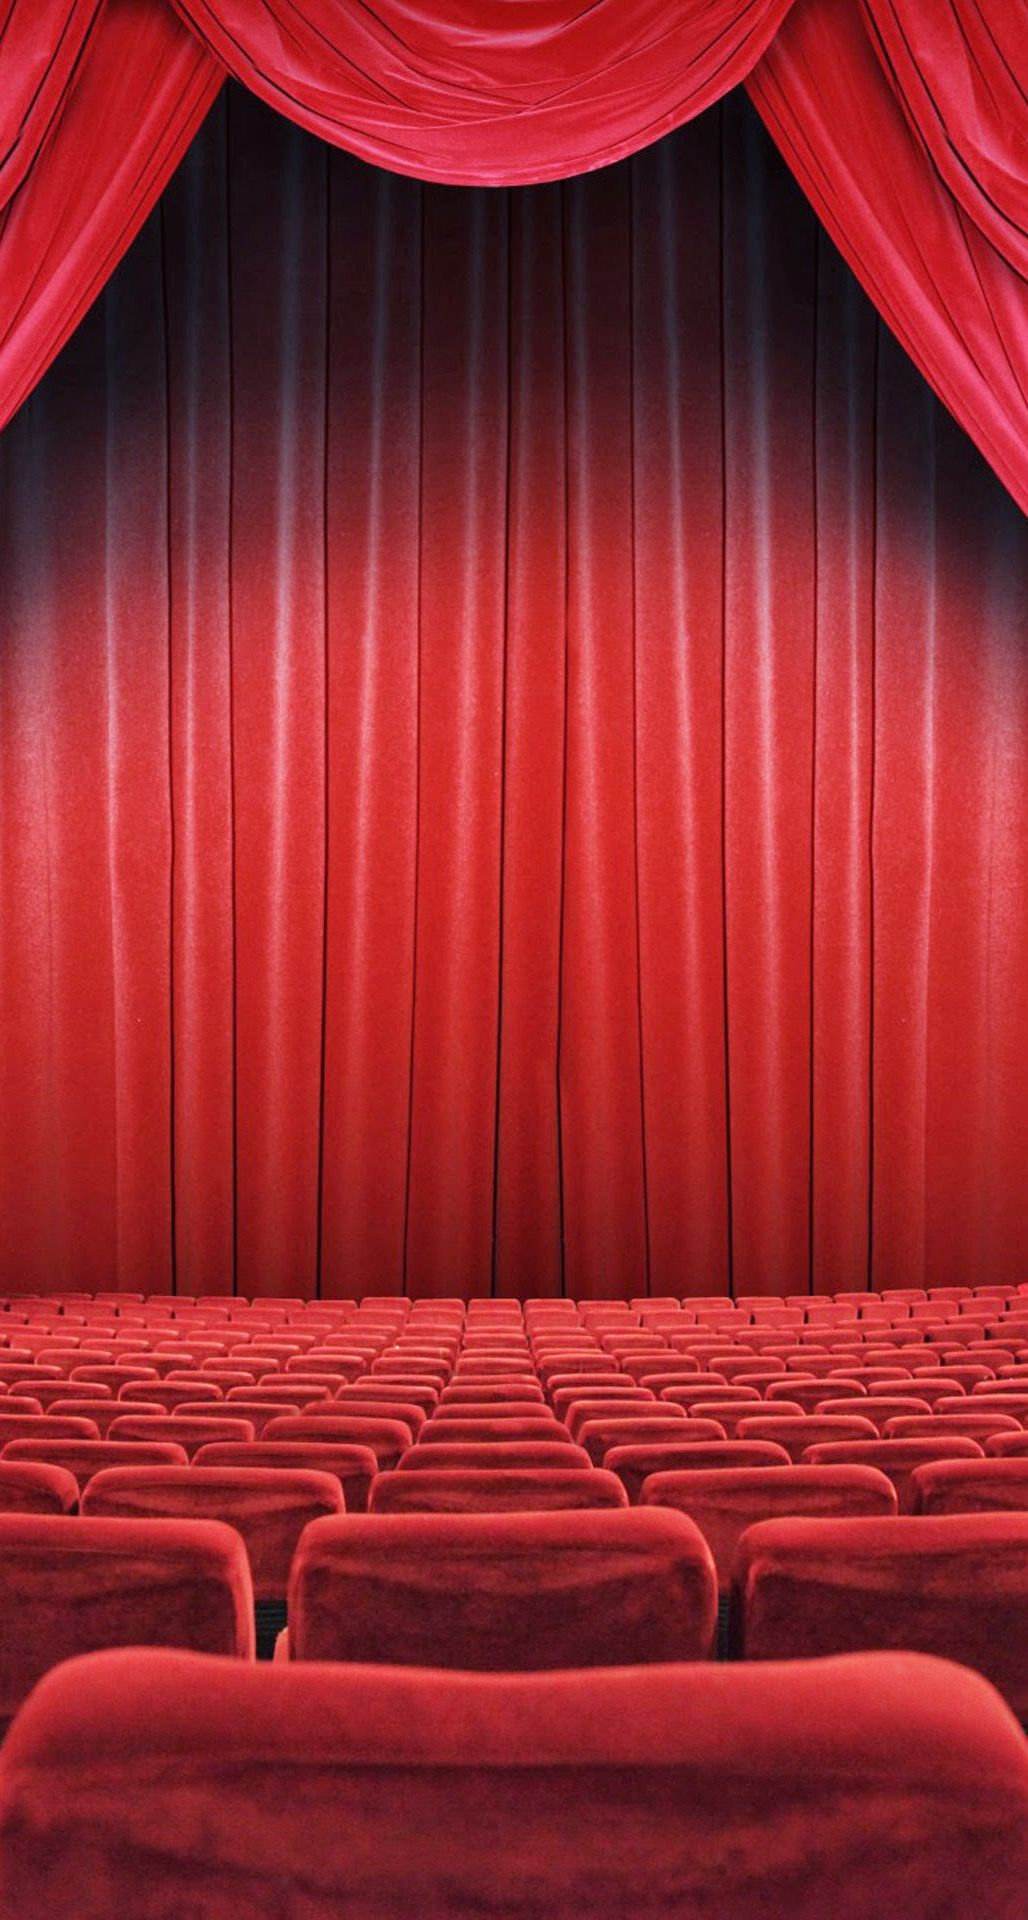 Theatre seats red curtain iphone 6 plus hd for Wallpaper hd home movie